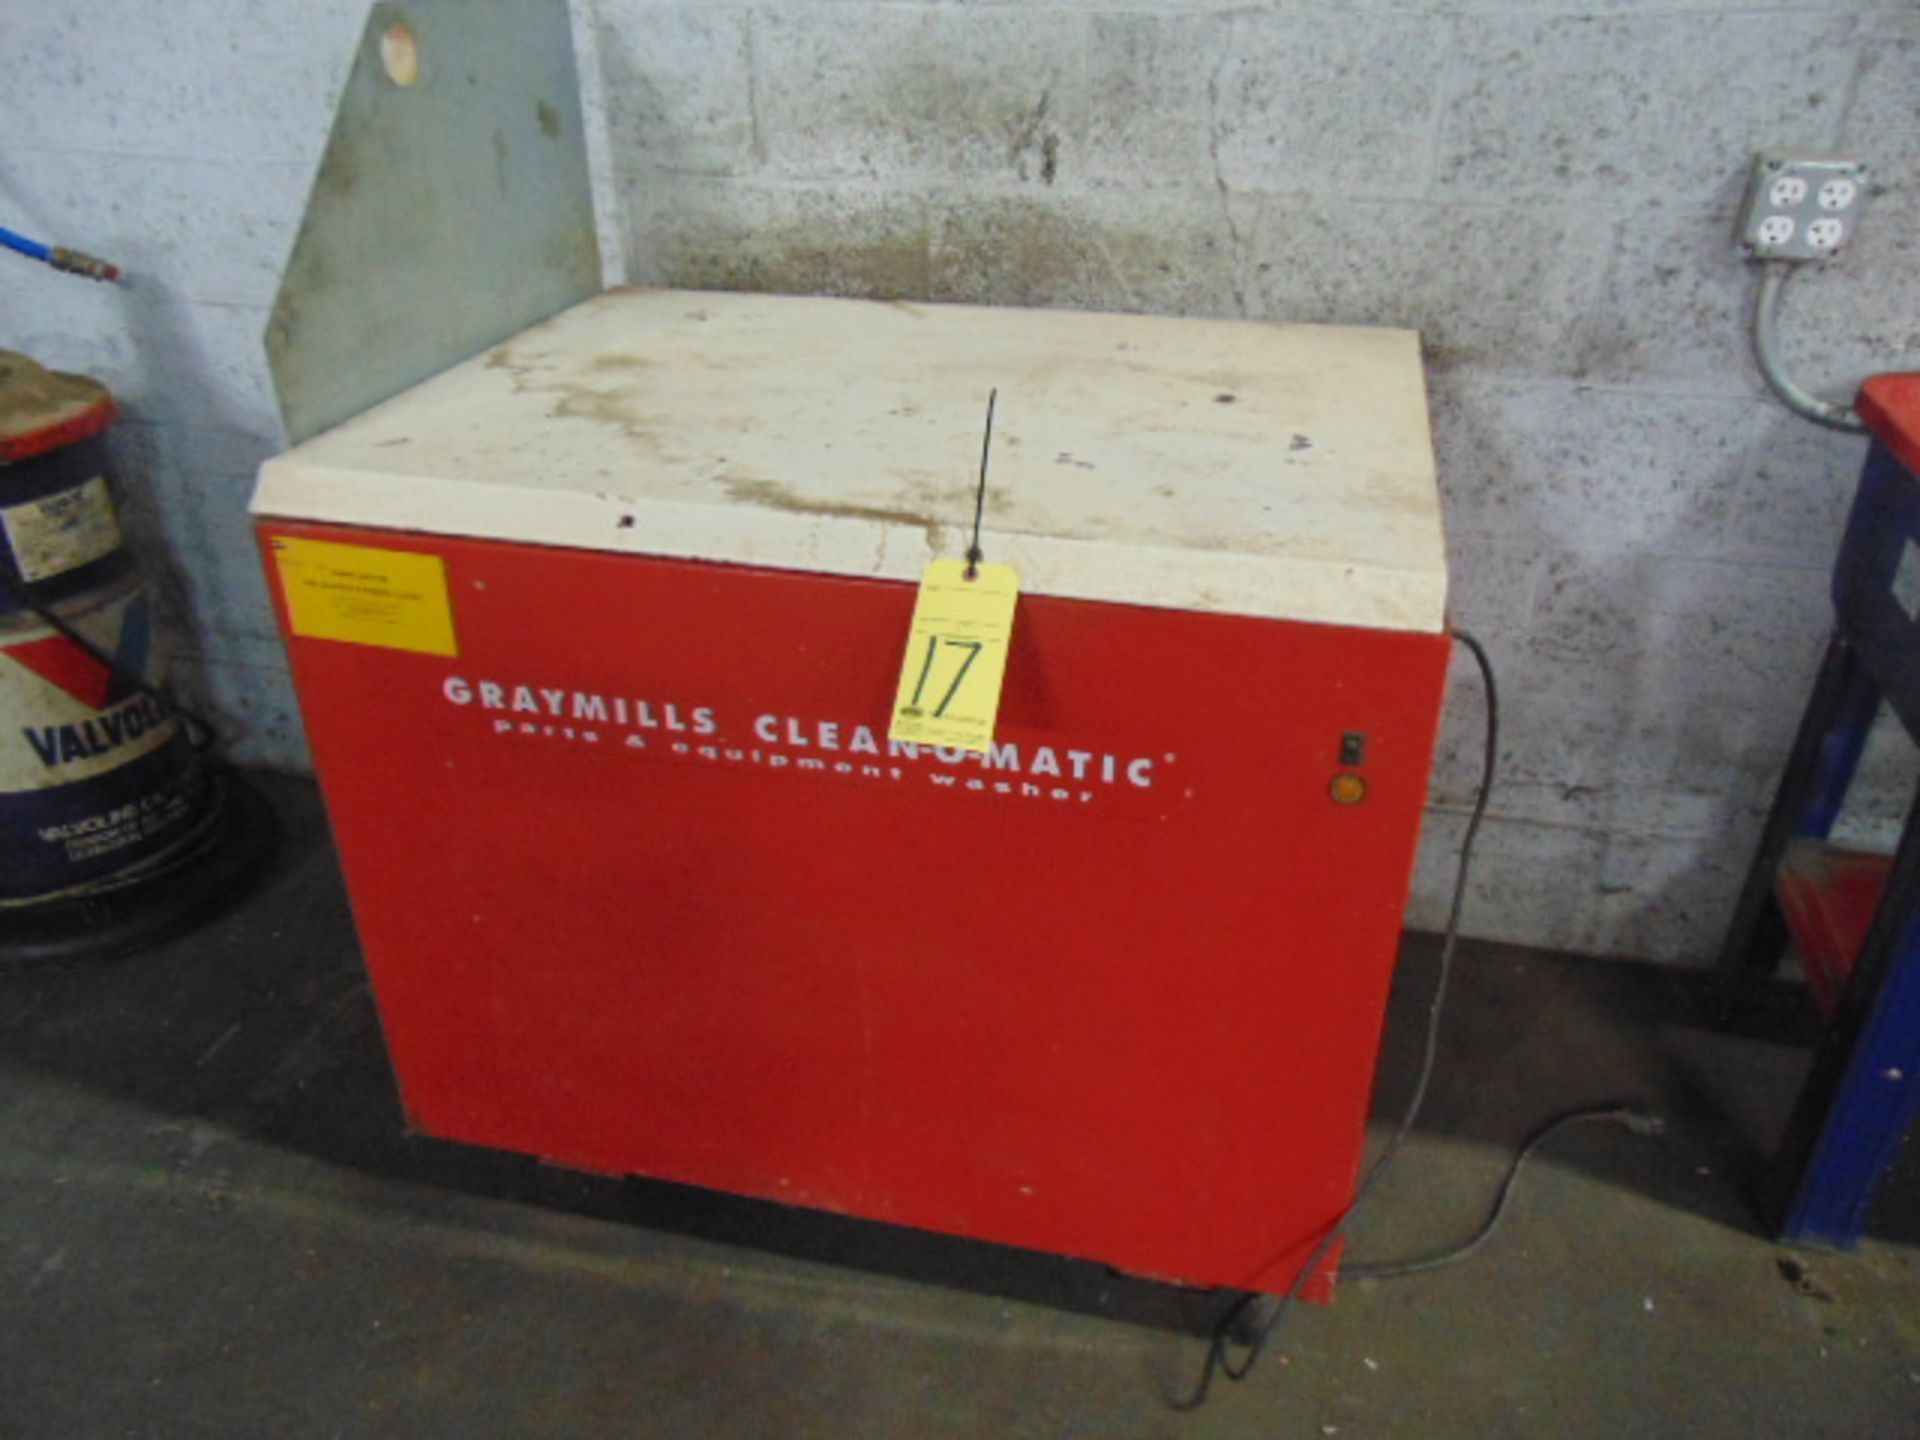 PARTS WASHER, GRAYMILLS CLEAN-O-MATIC MDL. 800A, S/N 1BBJ3